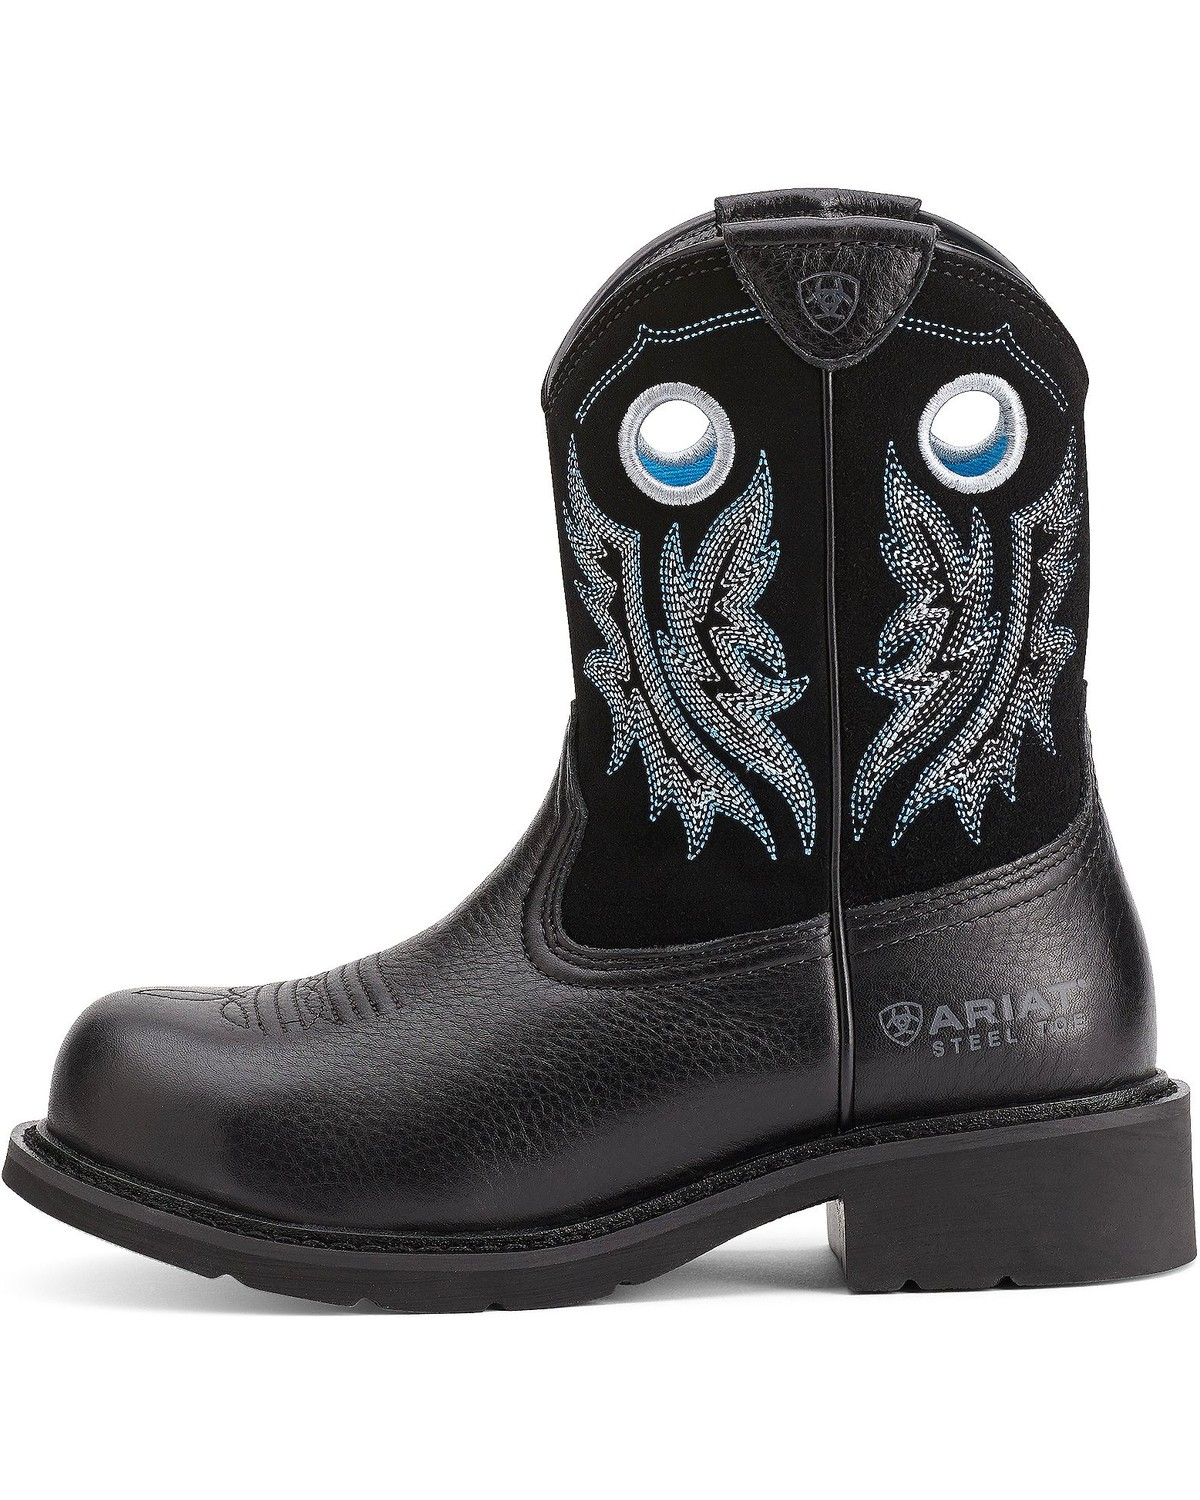 Ariat Women S Fatbaby Cowgirl Steel Toe Western Boots